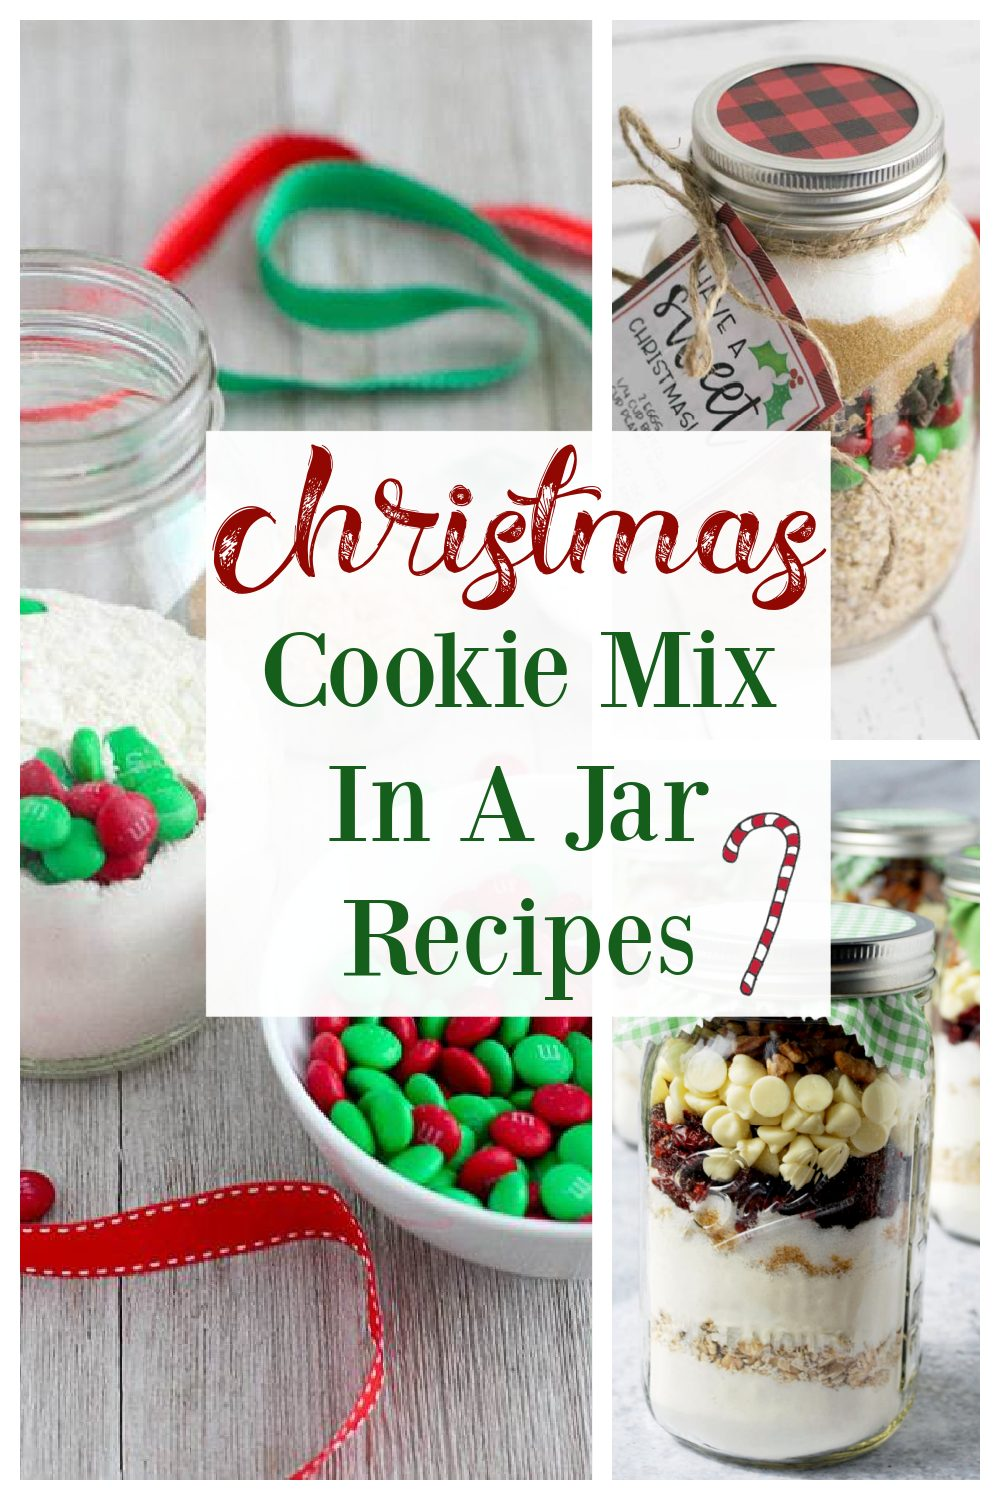 A round-up of delicious Christmas cookie mix in a jar recipes for holiday gift-giving. Homemade gifts are the best and everyone will love receiving these from-scratch mason jar treats!#cookiemixinjars #jarcookiemix #masonjarcookies #christmascookies #diygifts #foodiegifts via @Ameessavorydish